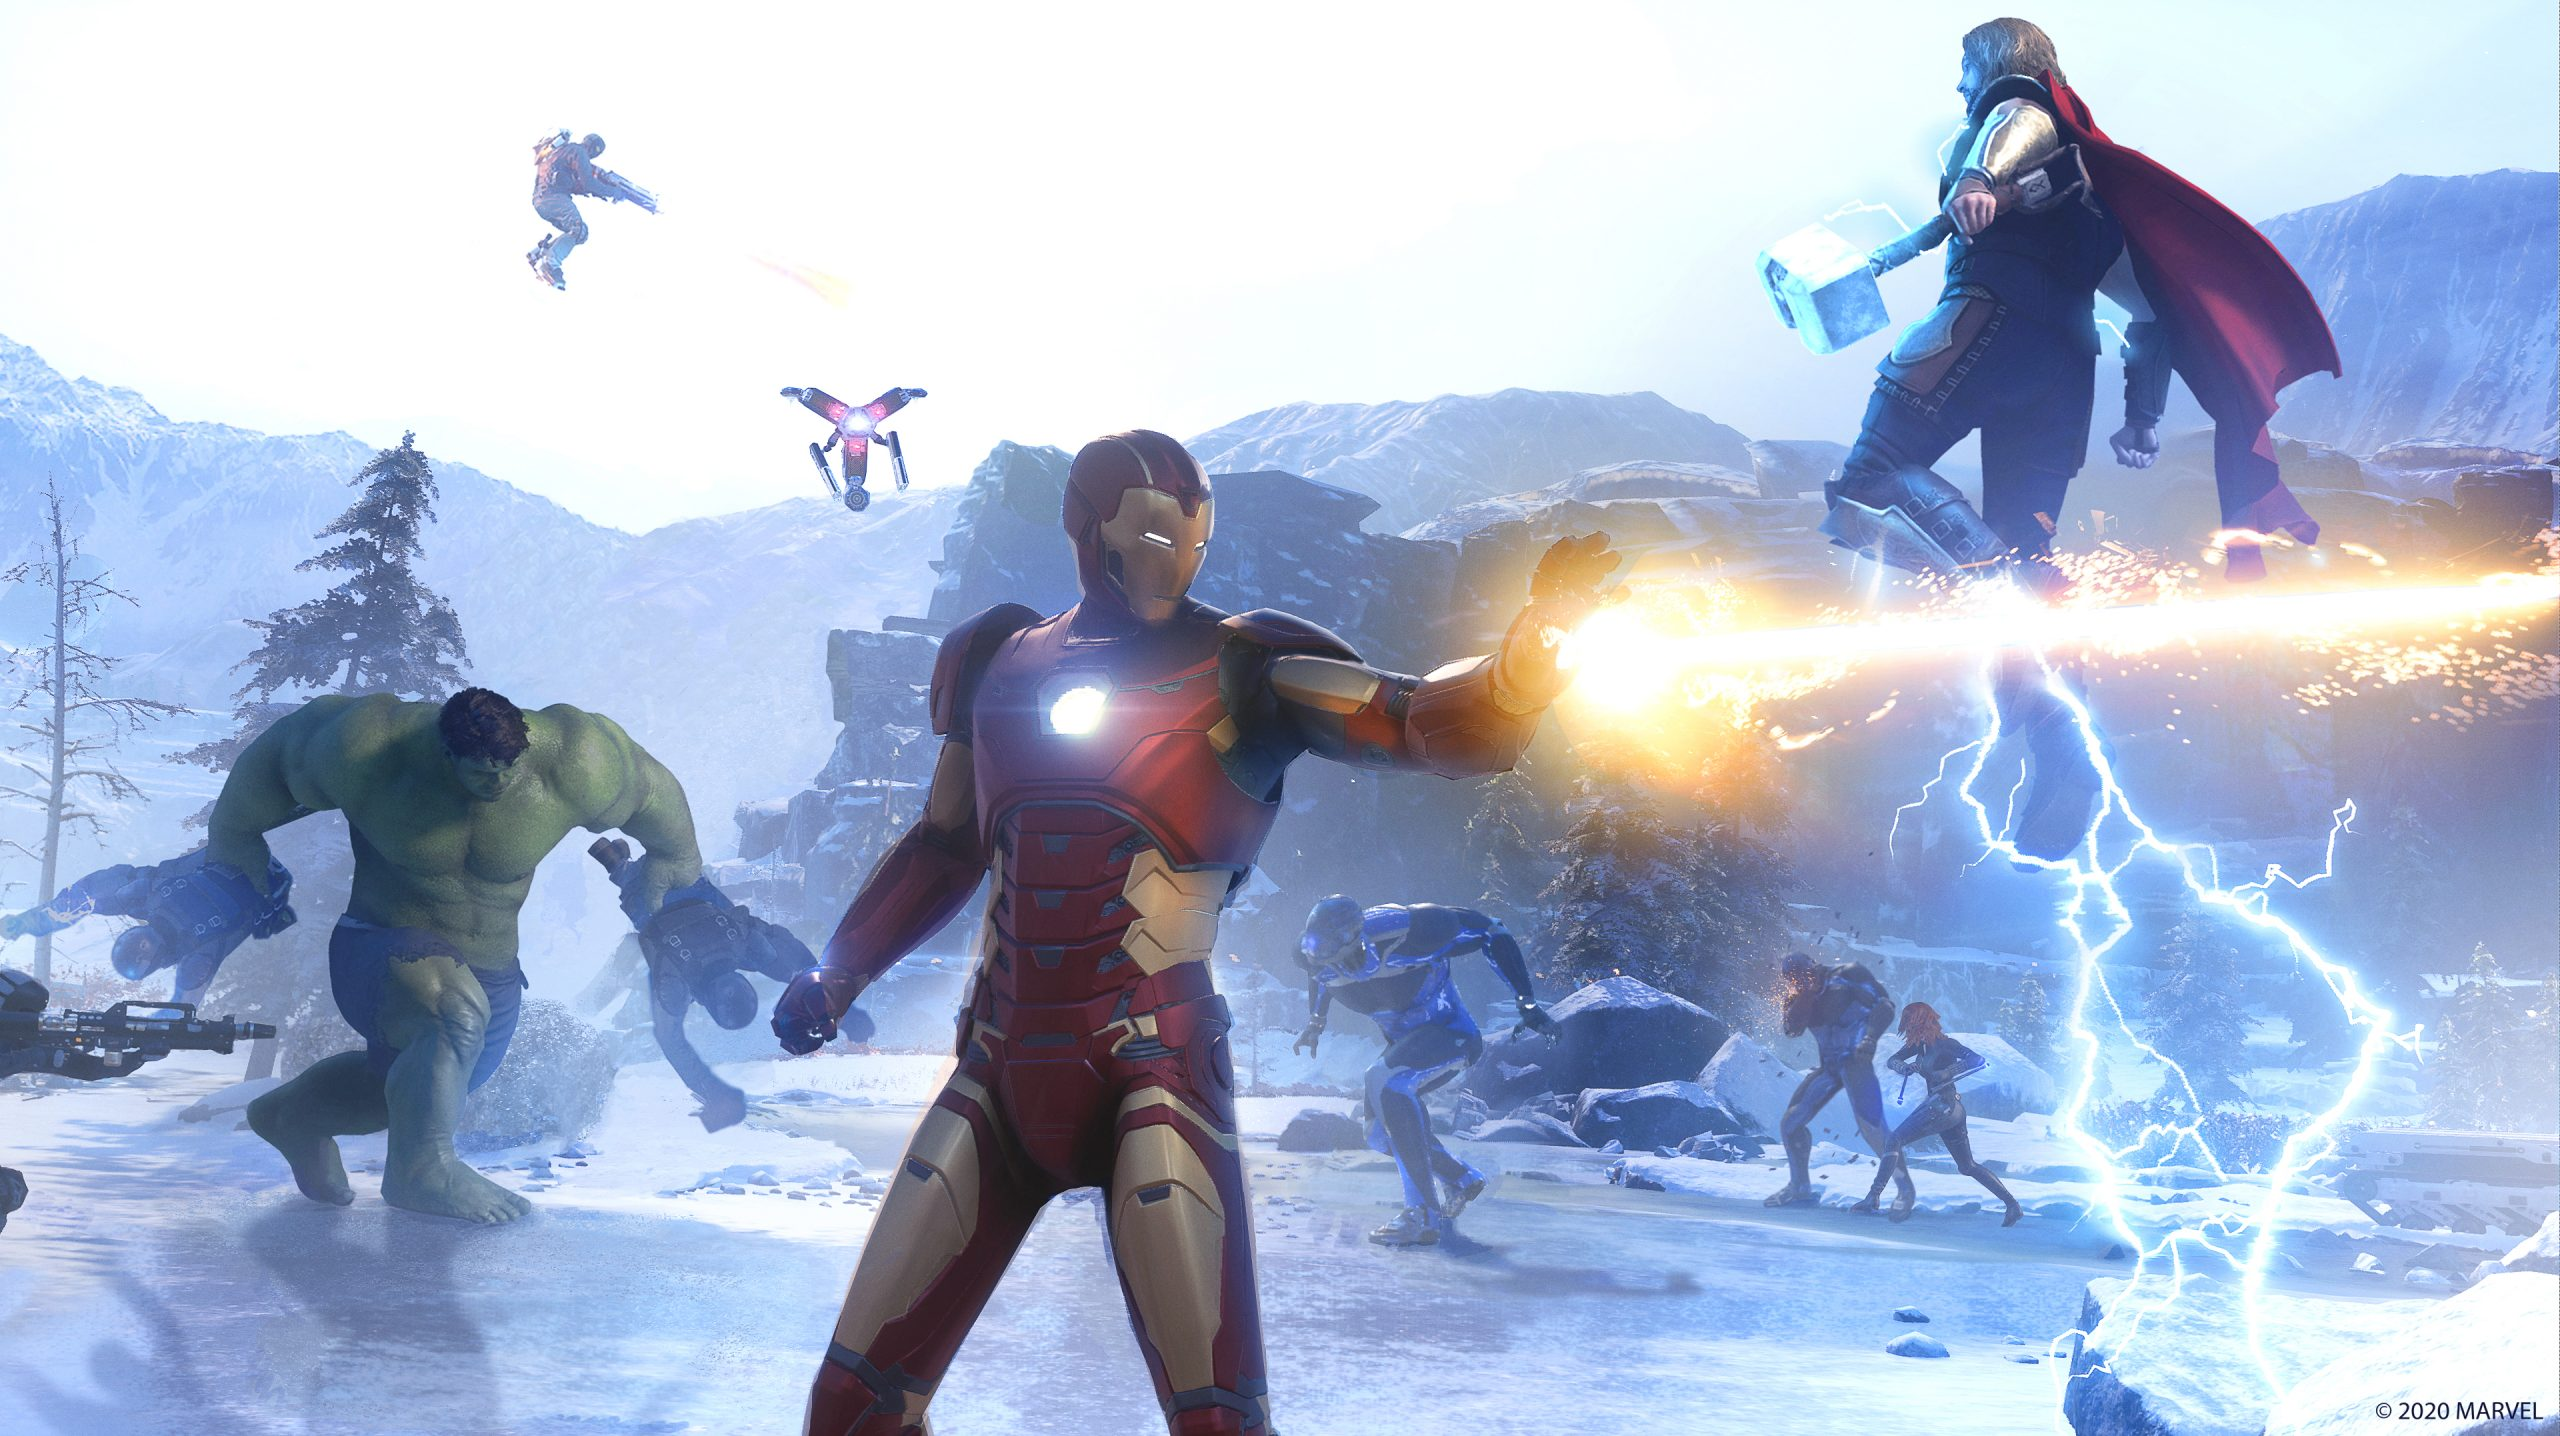 Marvel's Avengers Beta: Will Progress Carry Over To The Main Game?